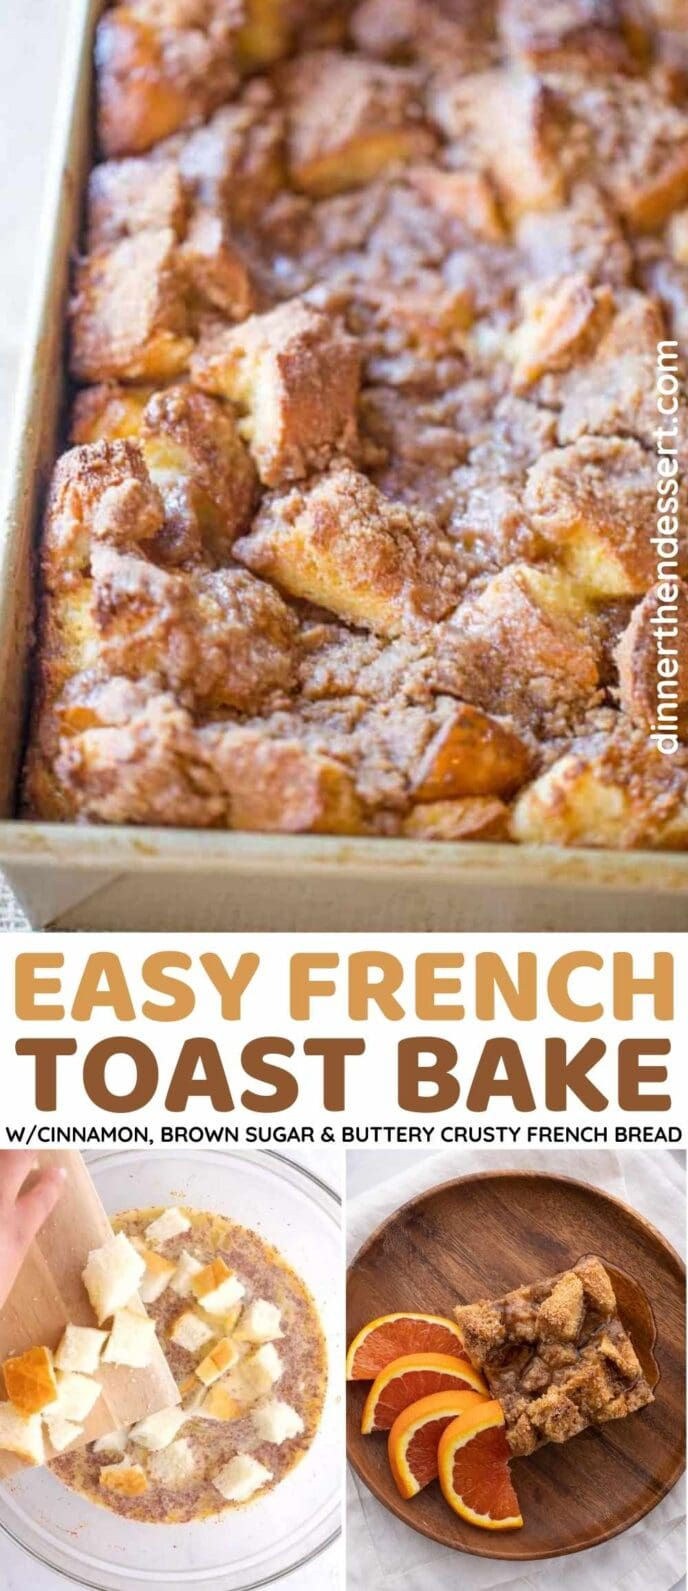 Easy French Toast Bake Collage